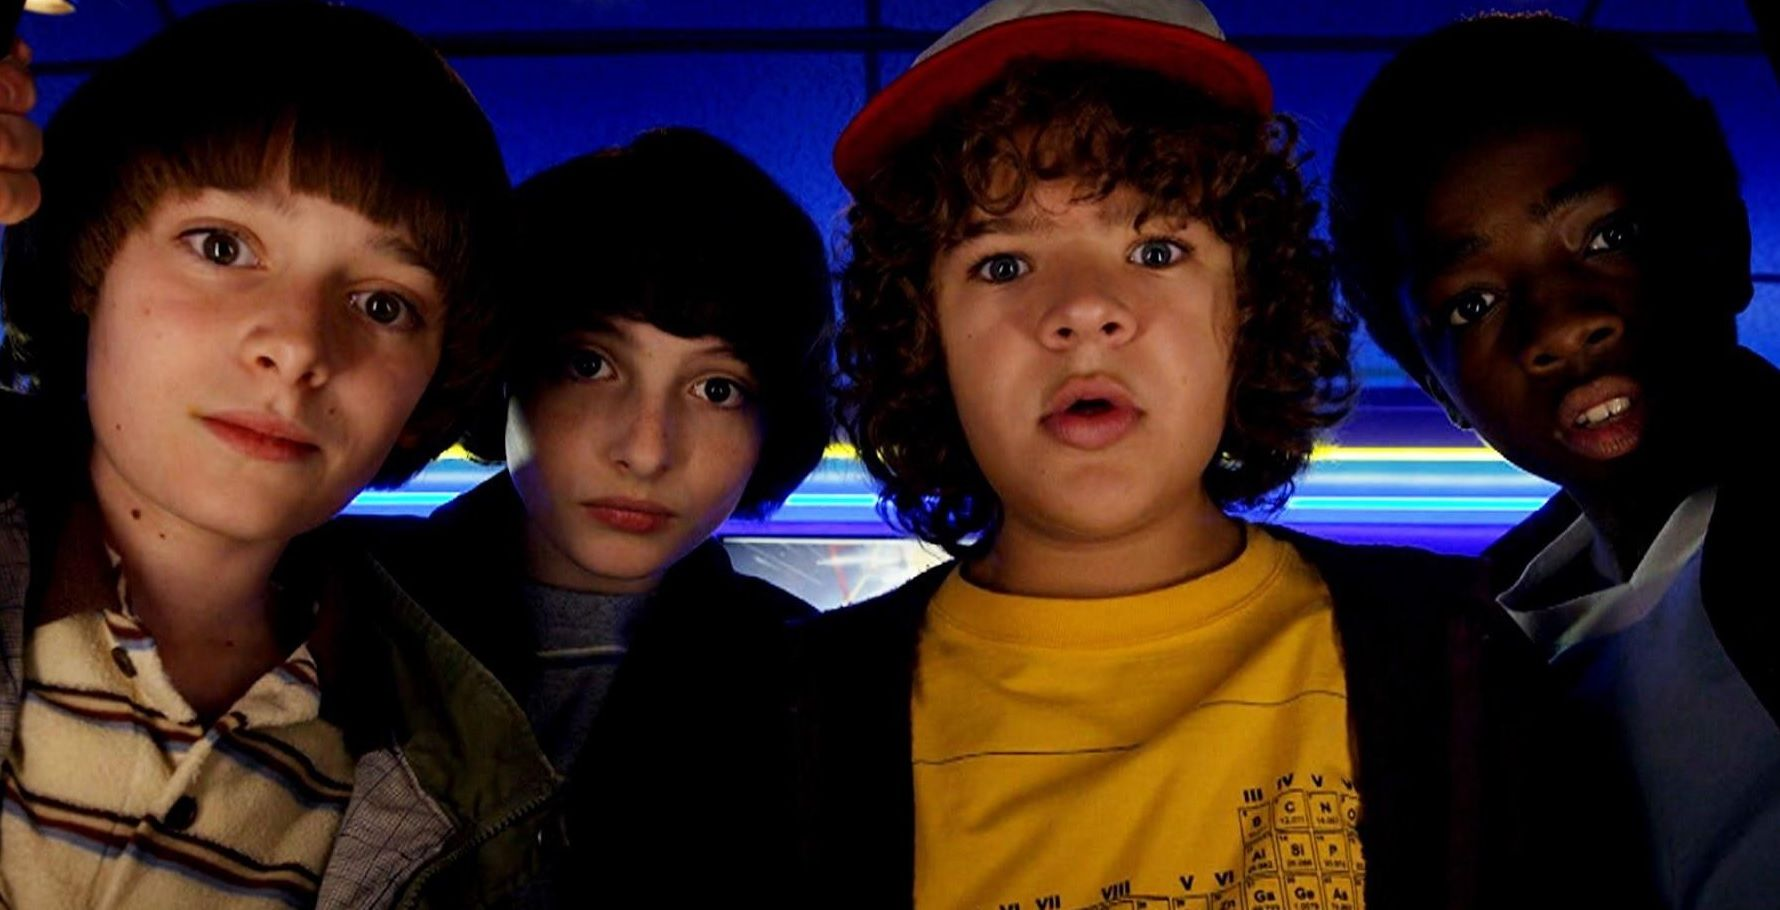 10 Shows To Watch If You Like Stranger Things   ScreenRant